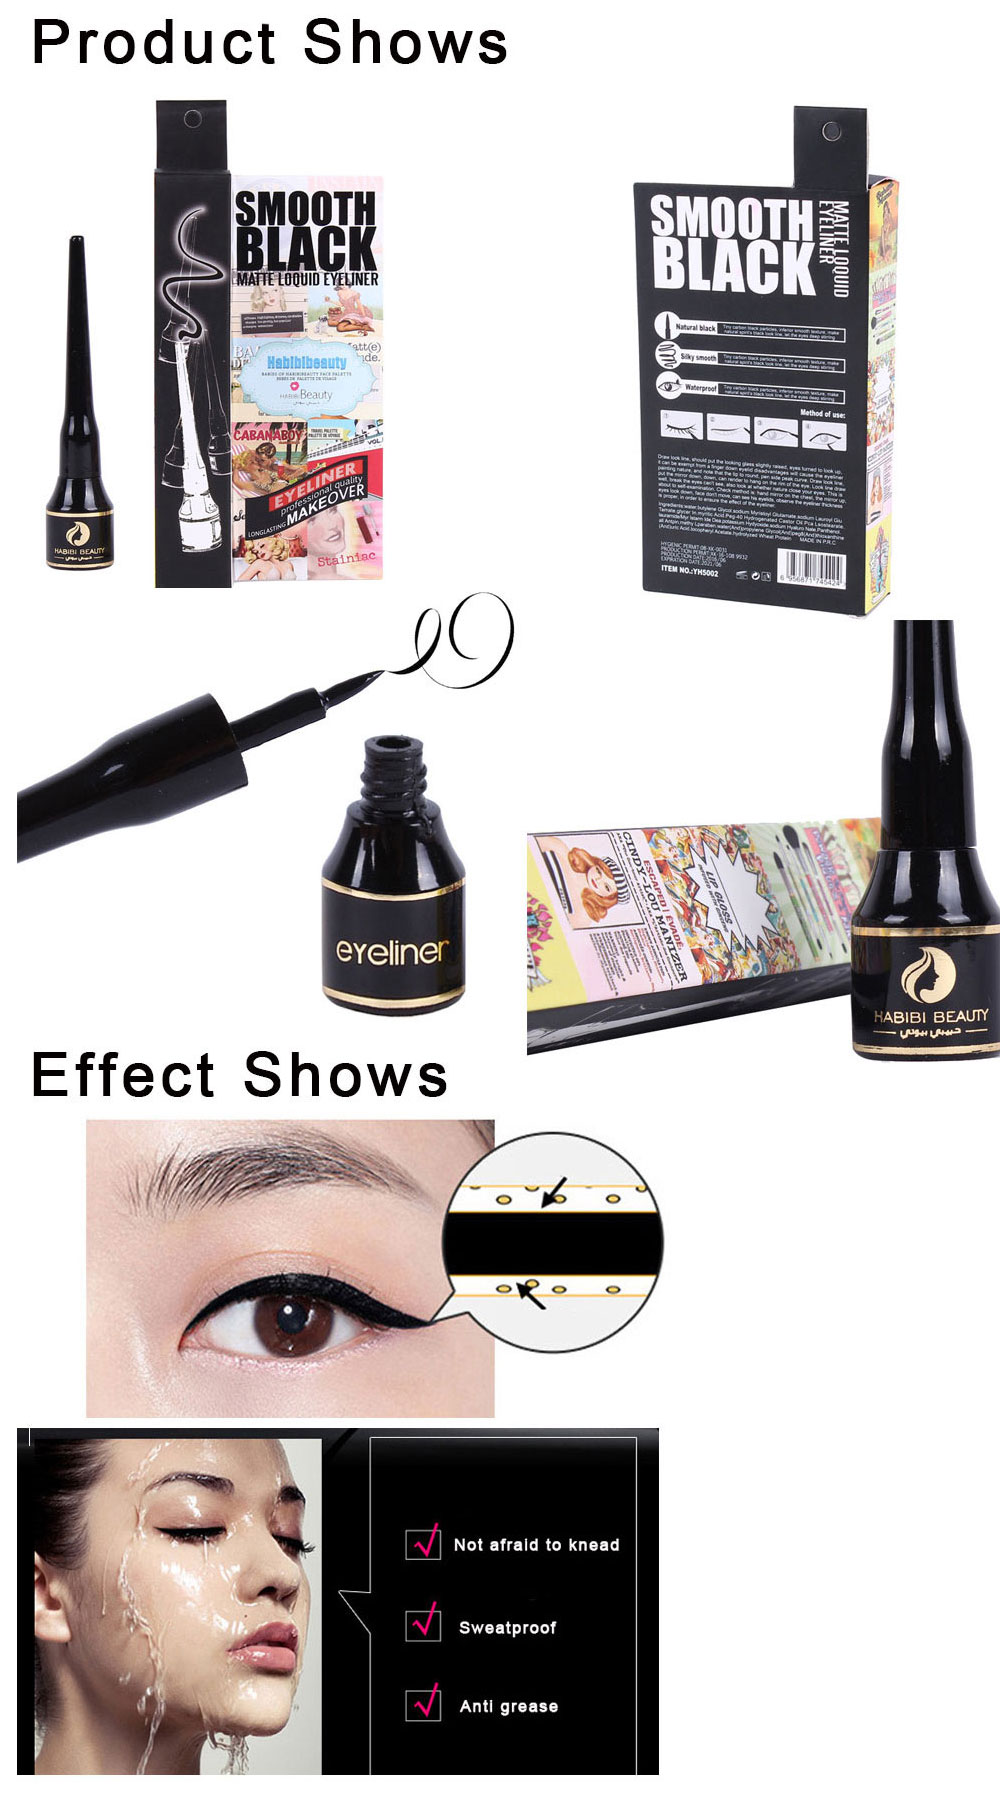 HABIBI BEAUTY New Makeup Waterproof Eye-liner with Stretch Tip